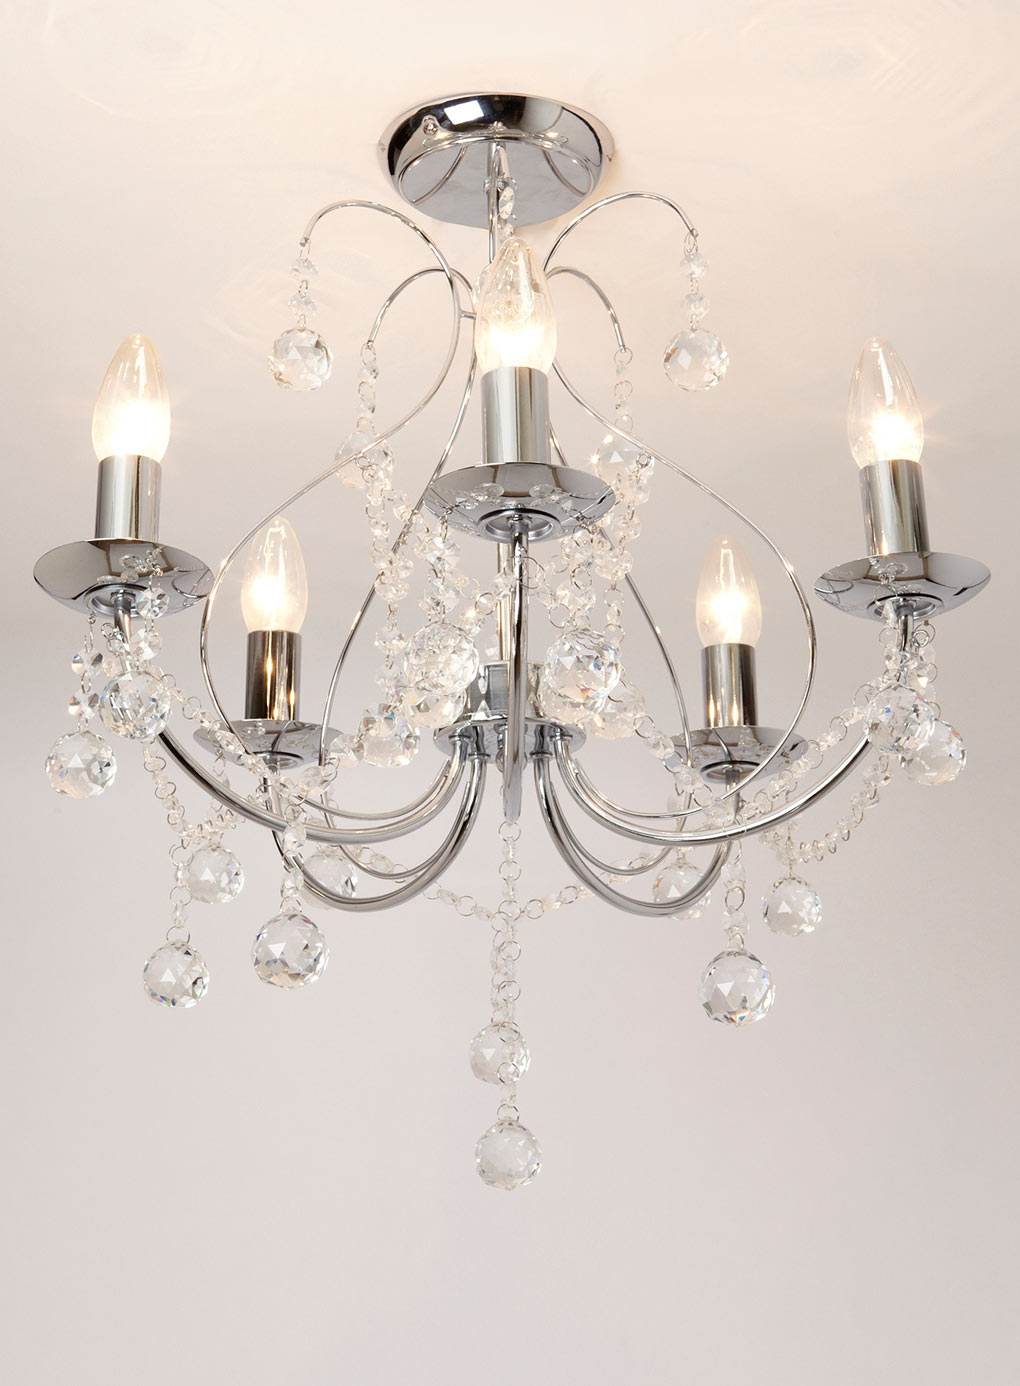 Sapparia 5 Light Flush Chandelier Bhs Chrome And Crystal Glass With Regard To Flush Fitting Chandelier (#11 of 12)